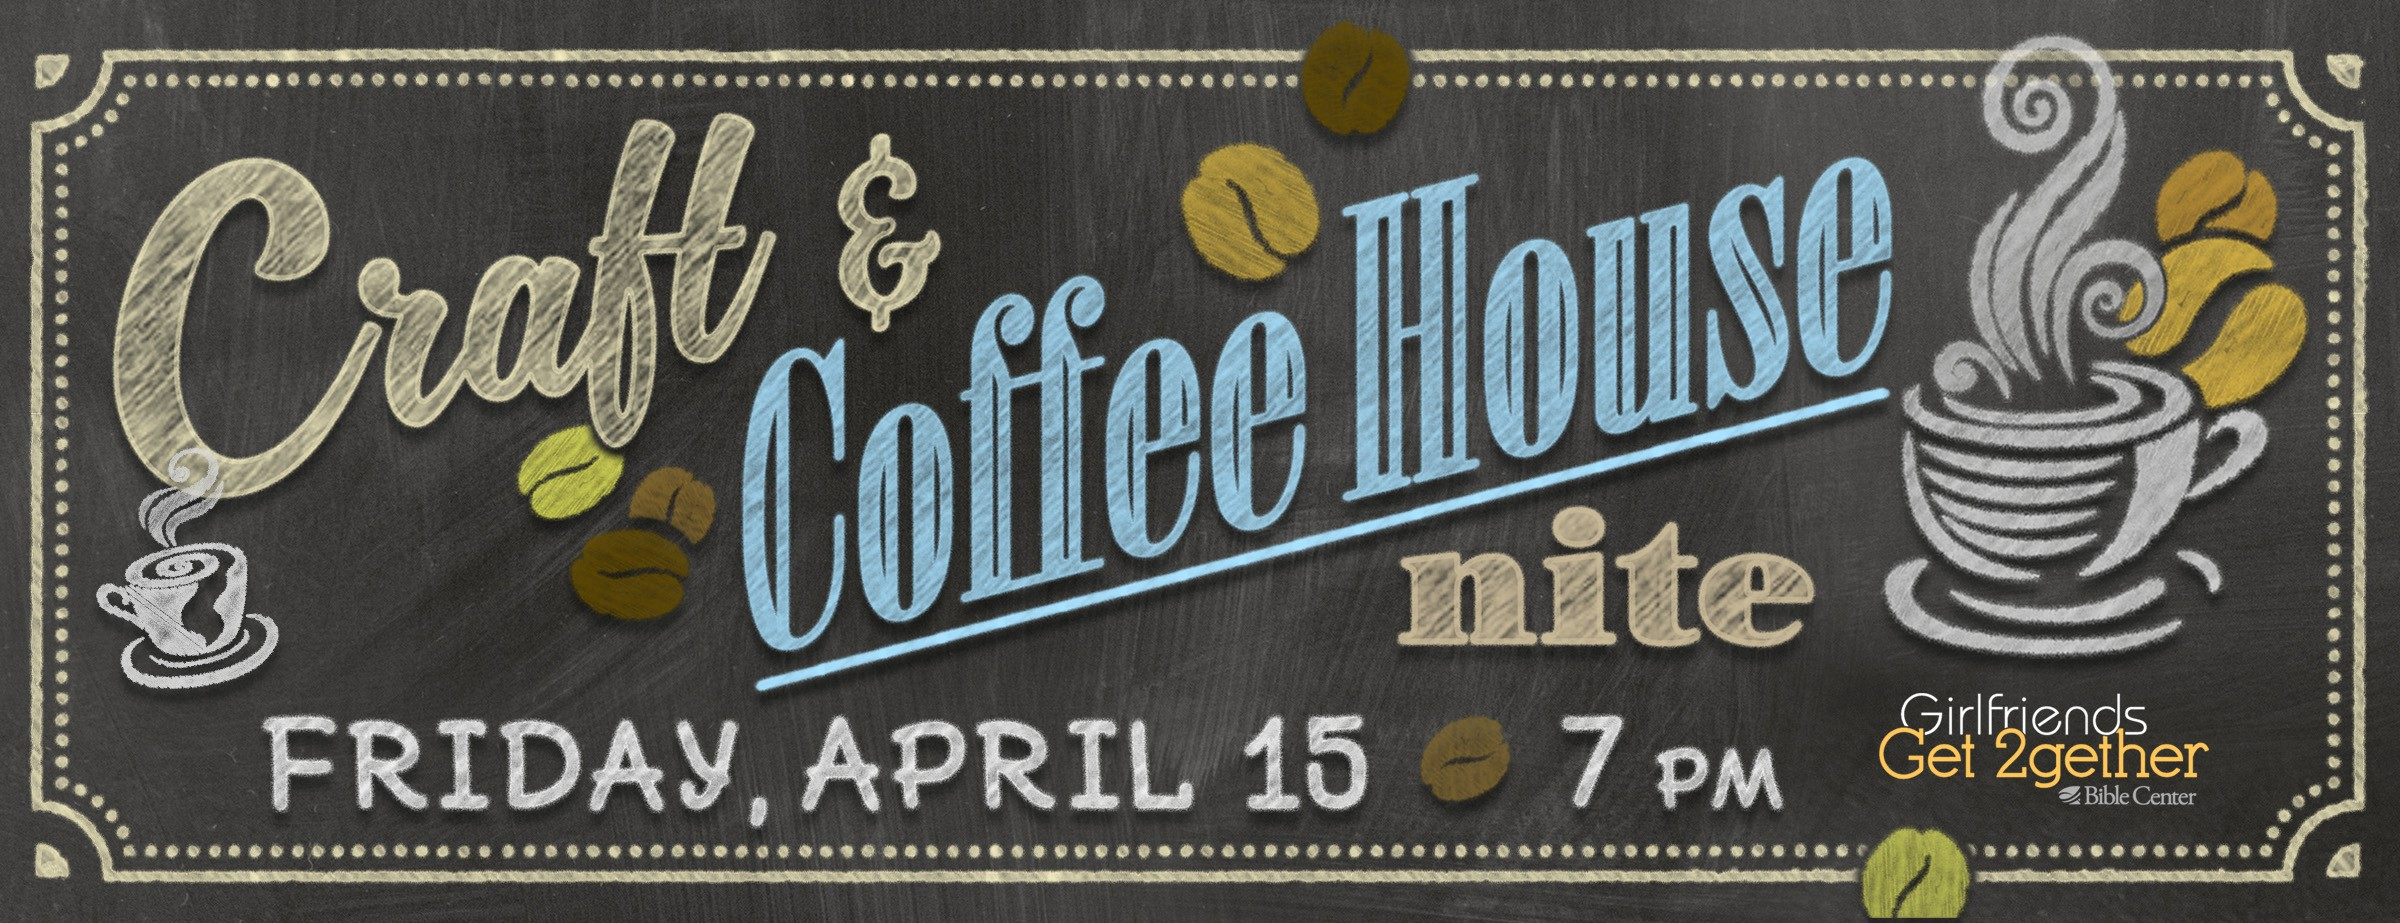 Craft & Coffee House Nite